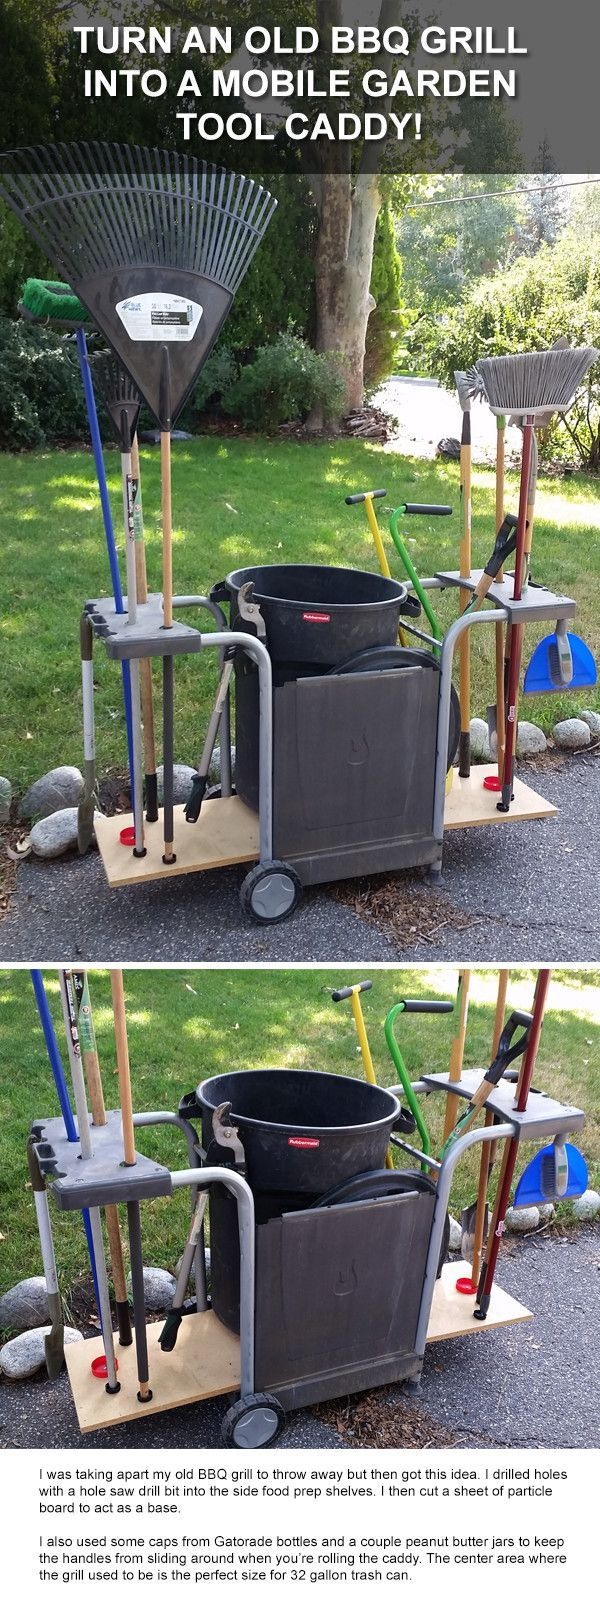 17 best images about cheap outdoor upgrades on pinterest - Grill utensil storage ideas ...